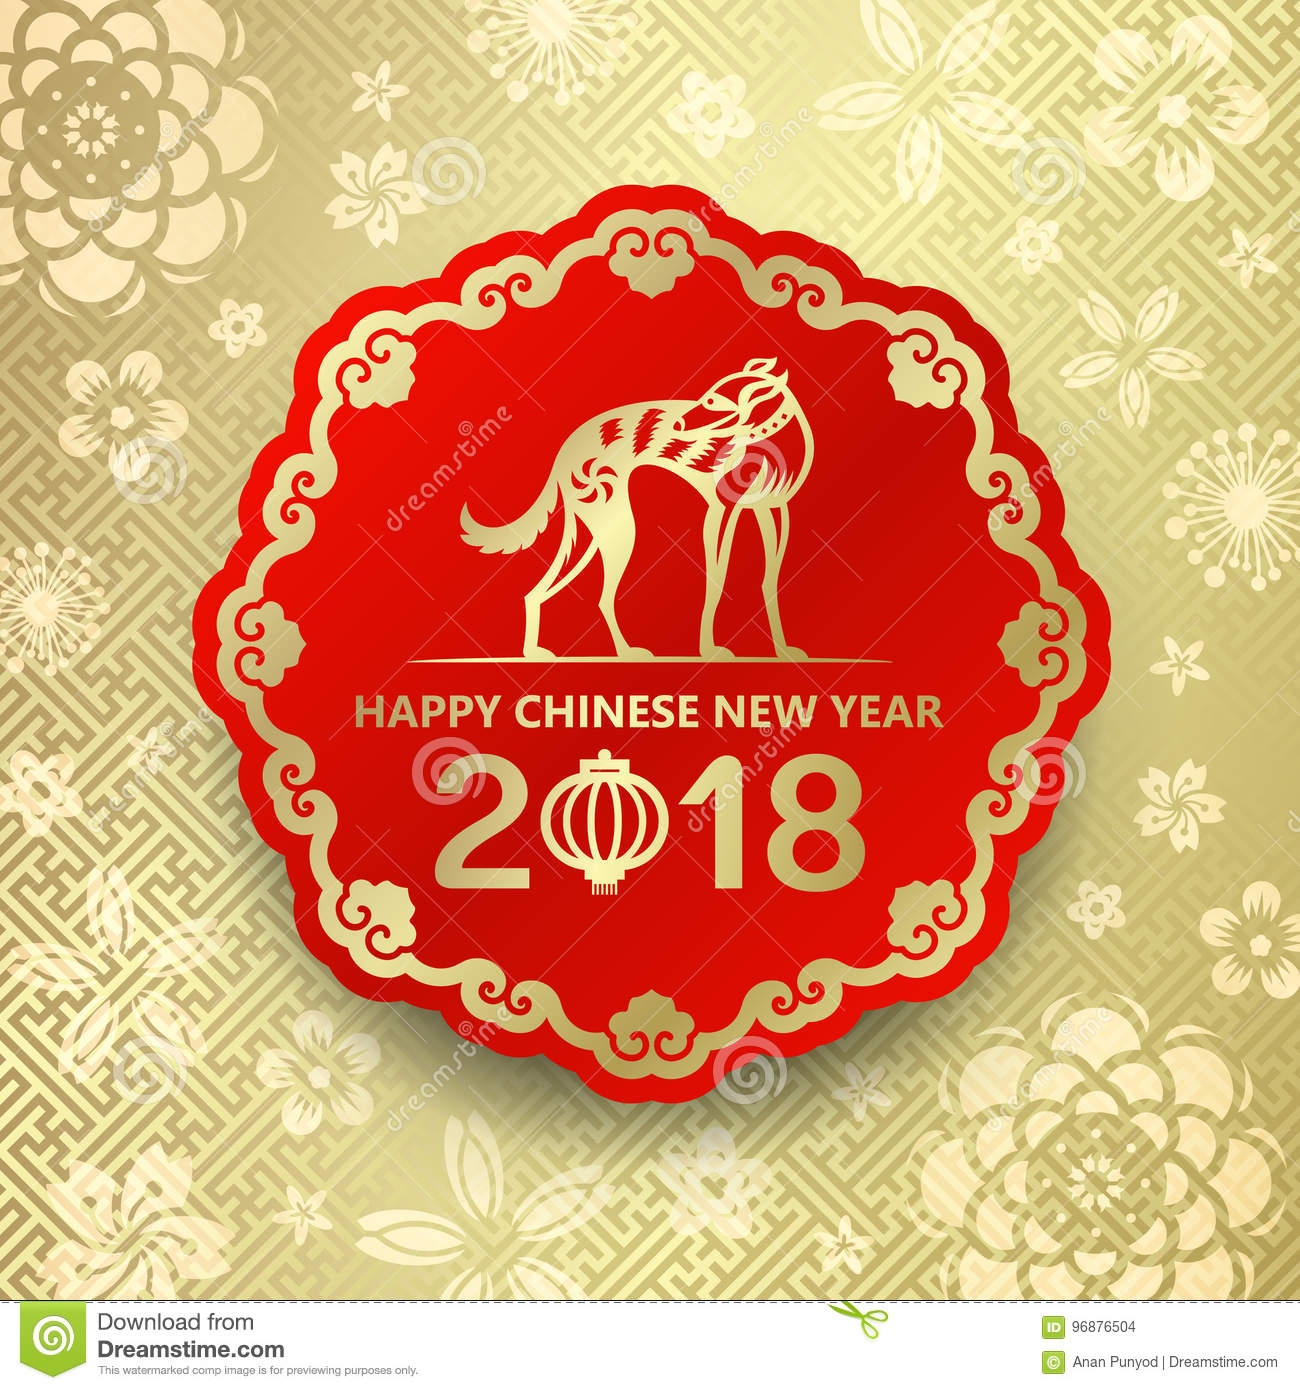 happy chinese new year 2018 banner with gold dog zodiac